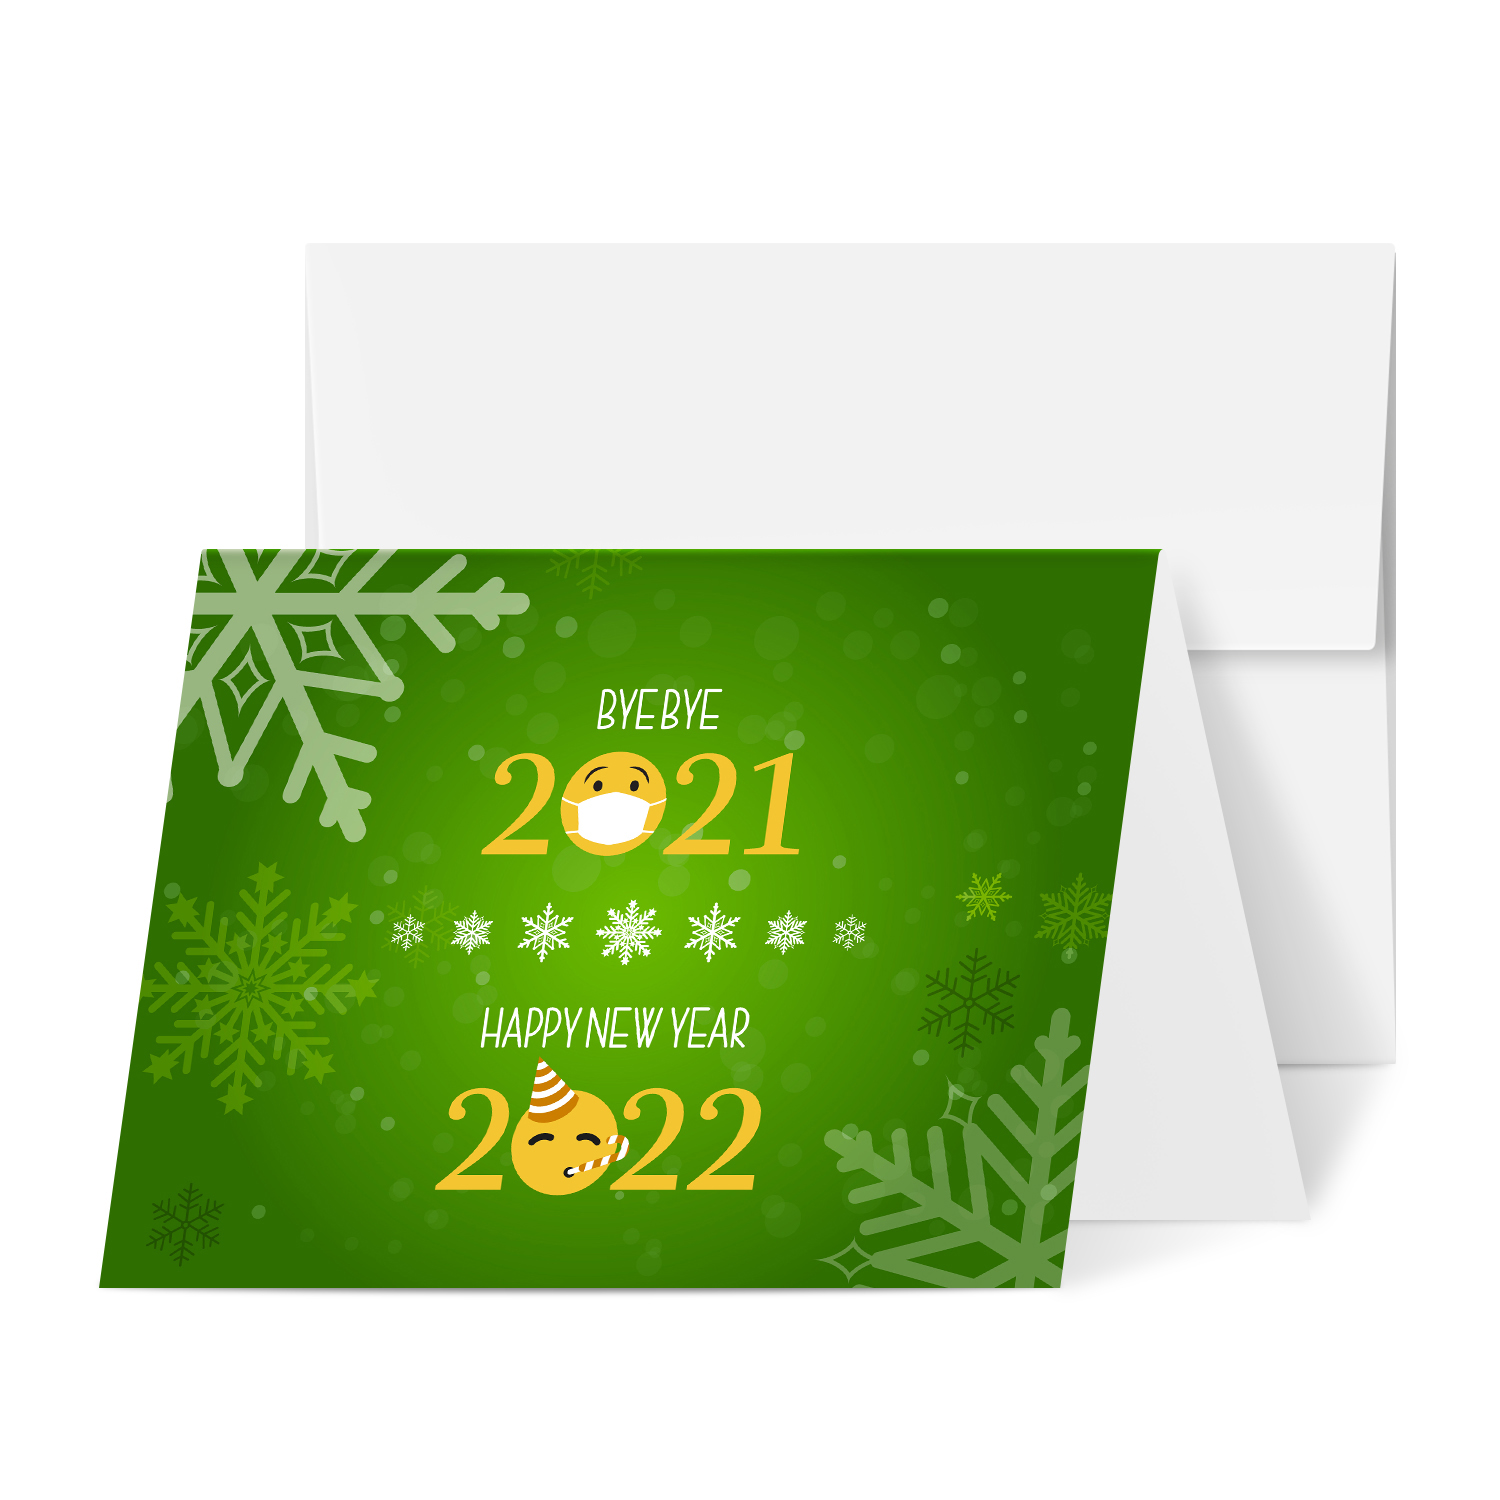 Happy New Year 2022 Cards